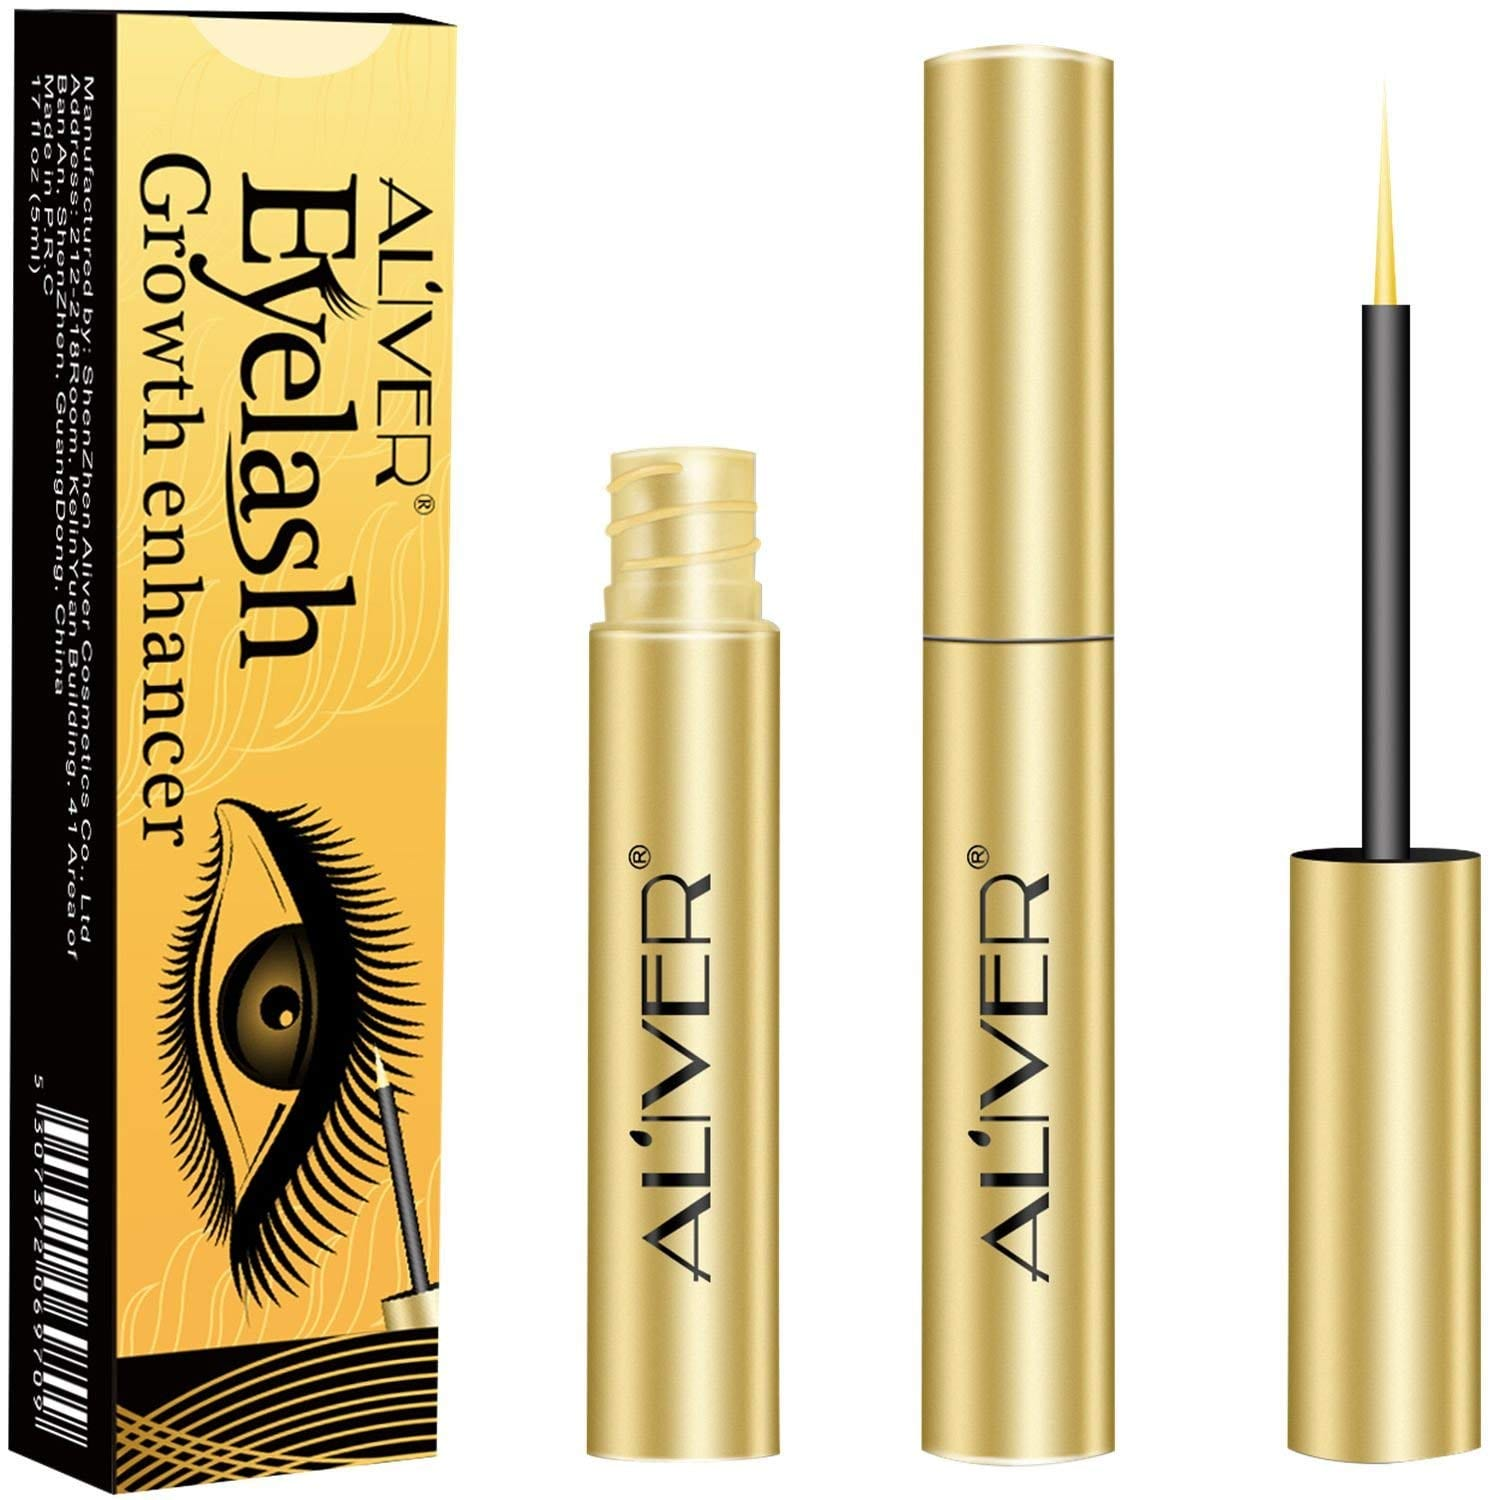 Eyelash Growth Serum, Aliver Natural Extract Lash and Brow Enhancer